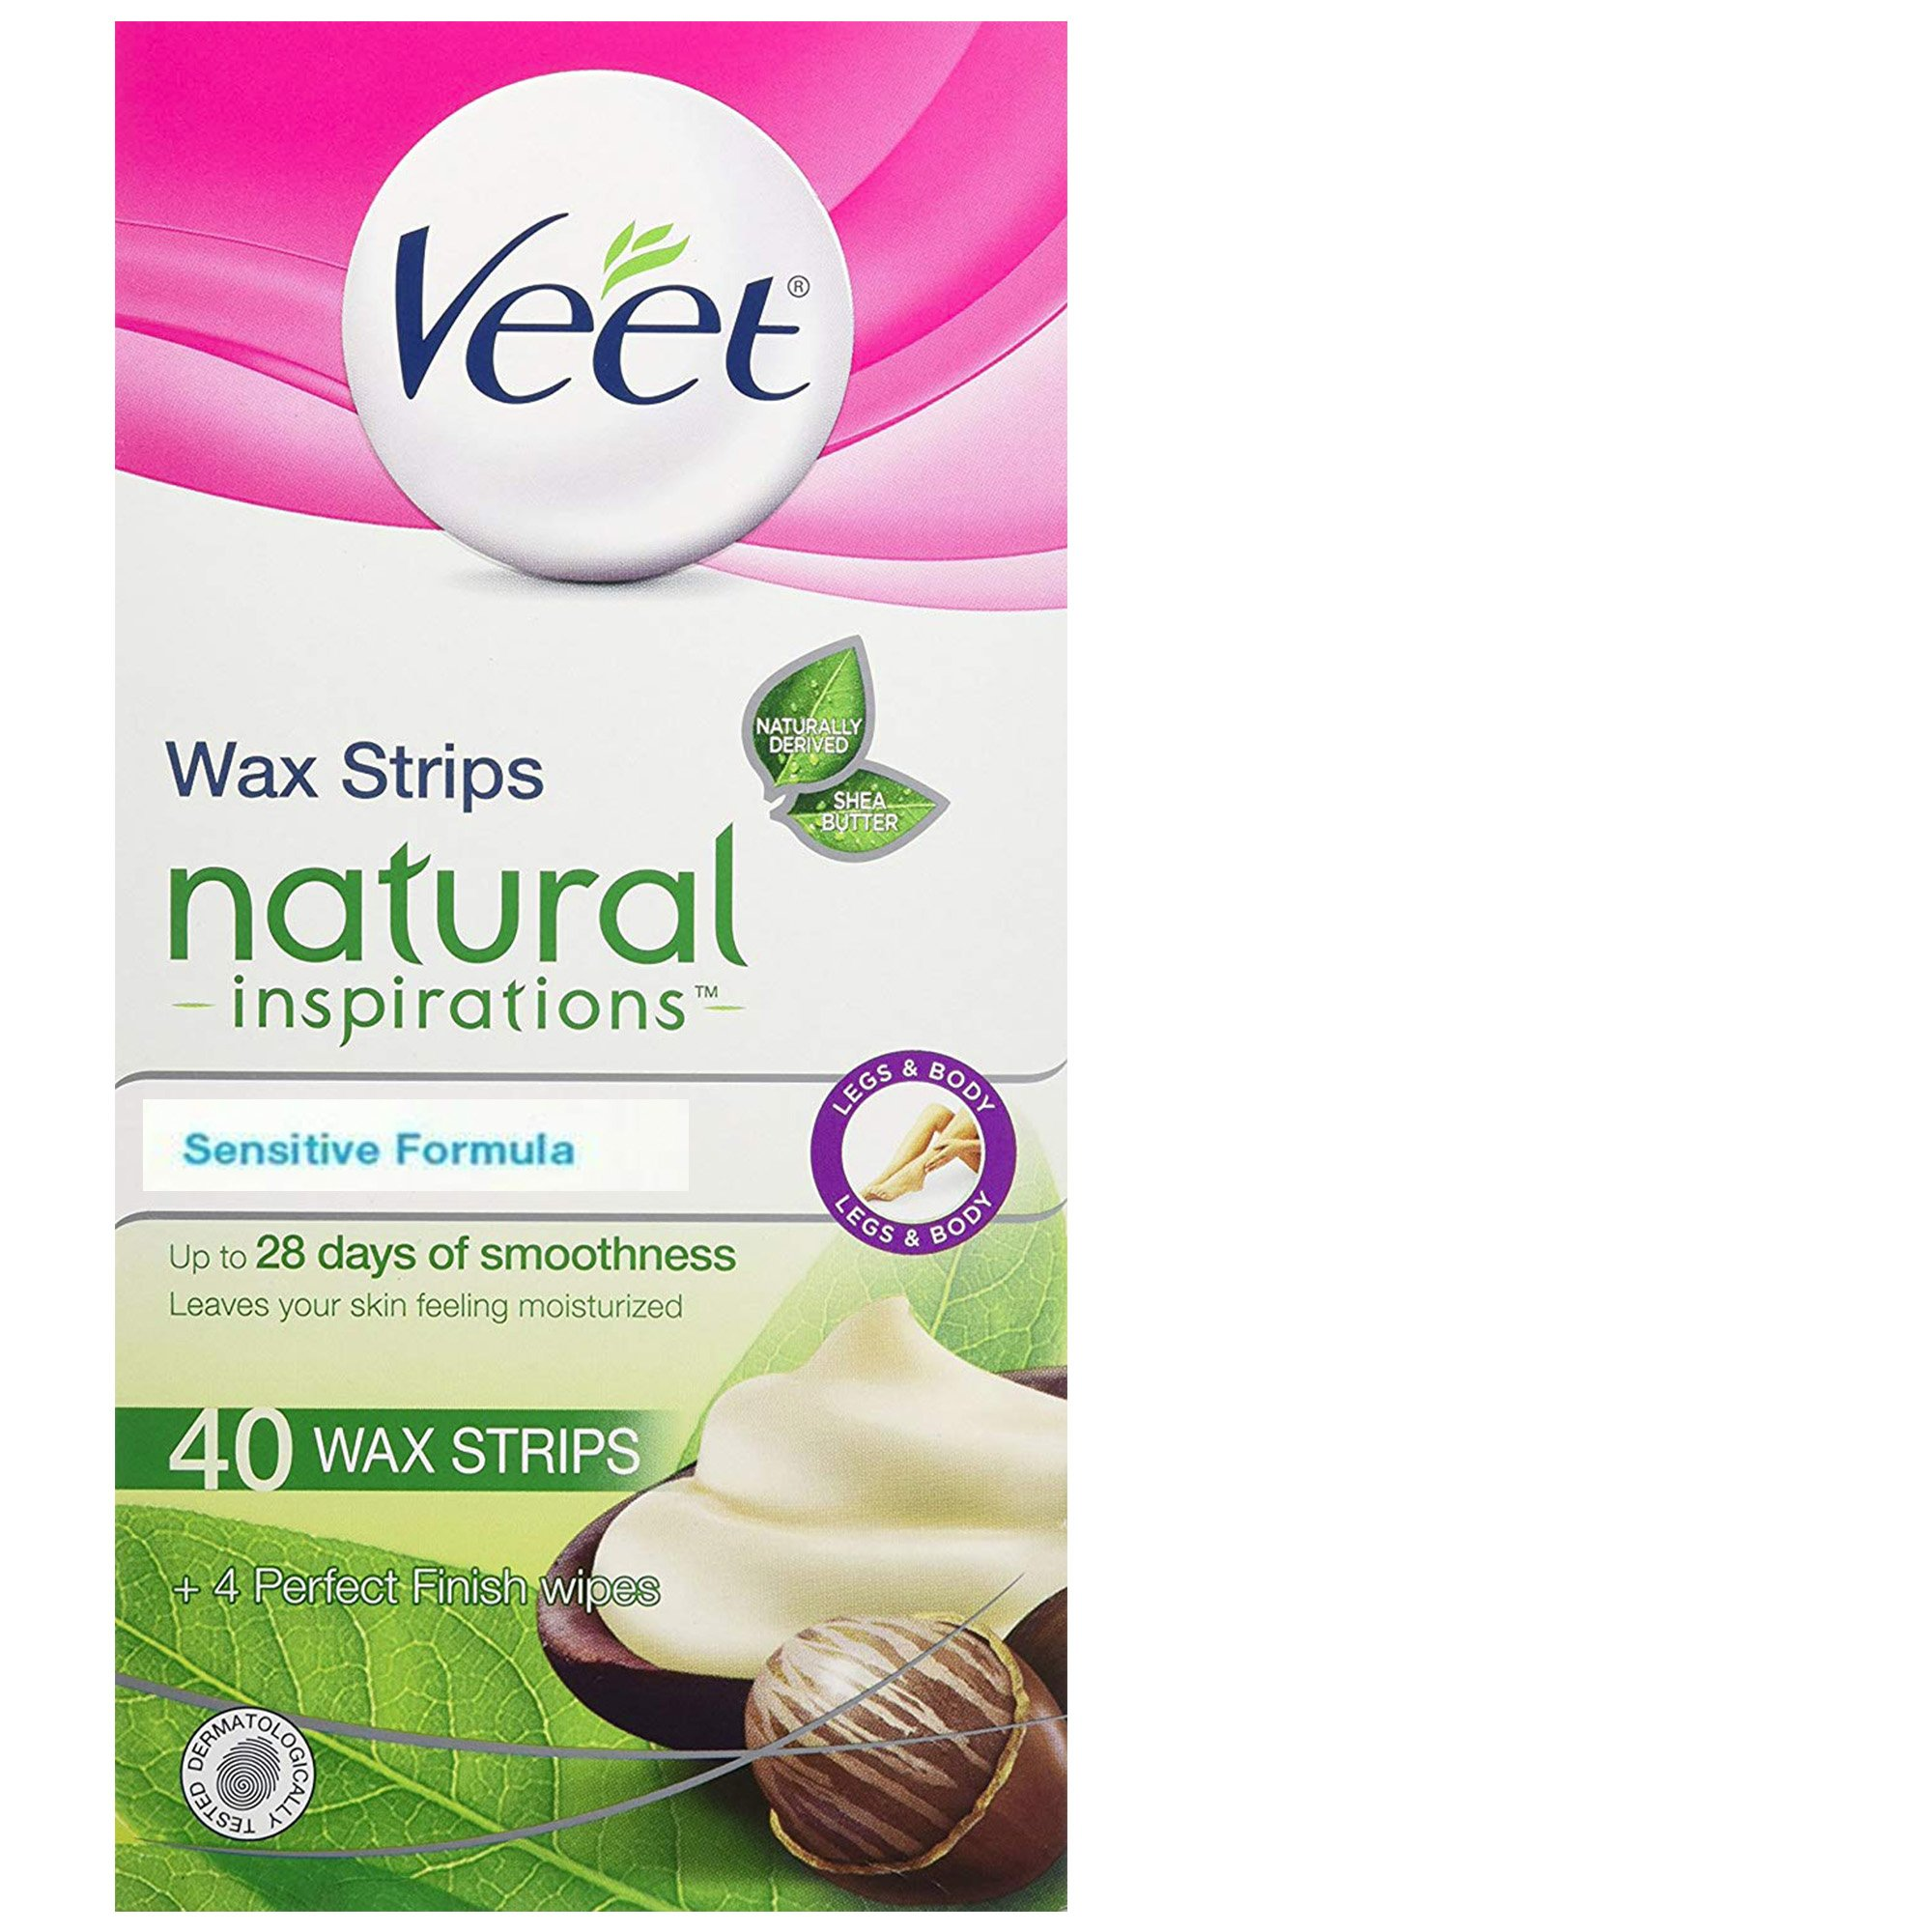 Veet Natural Inspirations, Hair Removal, Precision Wax Strips with Shea Butter, Sensitive, Legs & Body, 40 Count